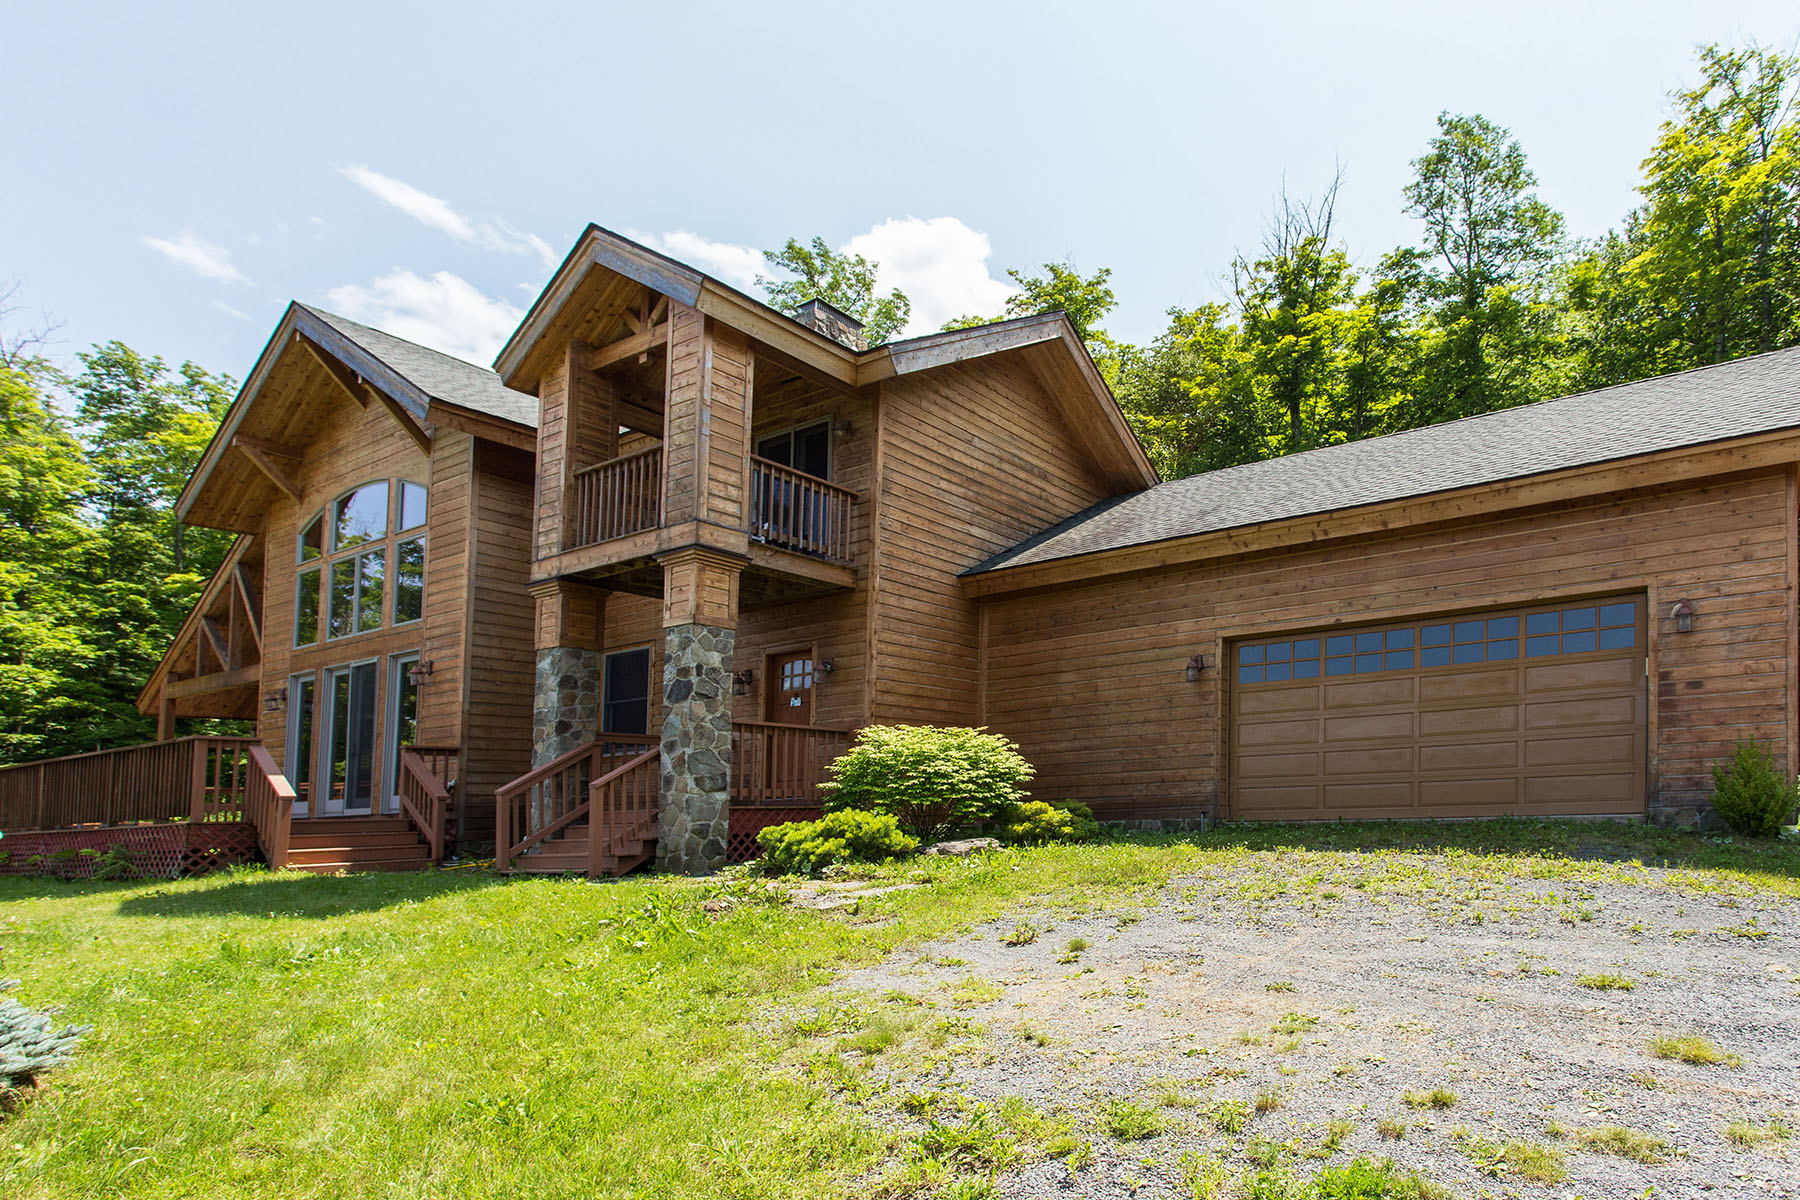 Single Family Home for Sale at Executive Chalet with View of the Catskills 53 Jacobs La Hunter, New York 12442 United States